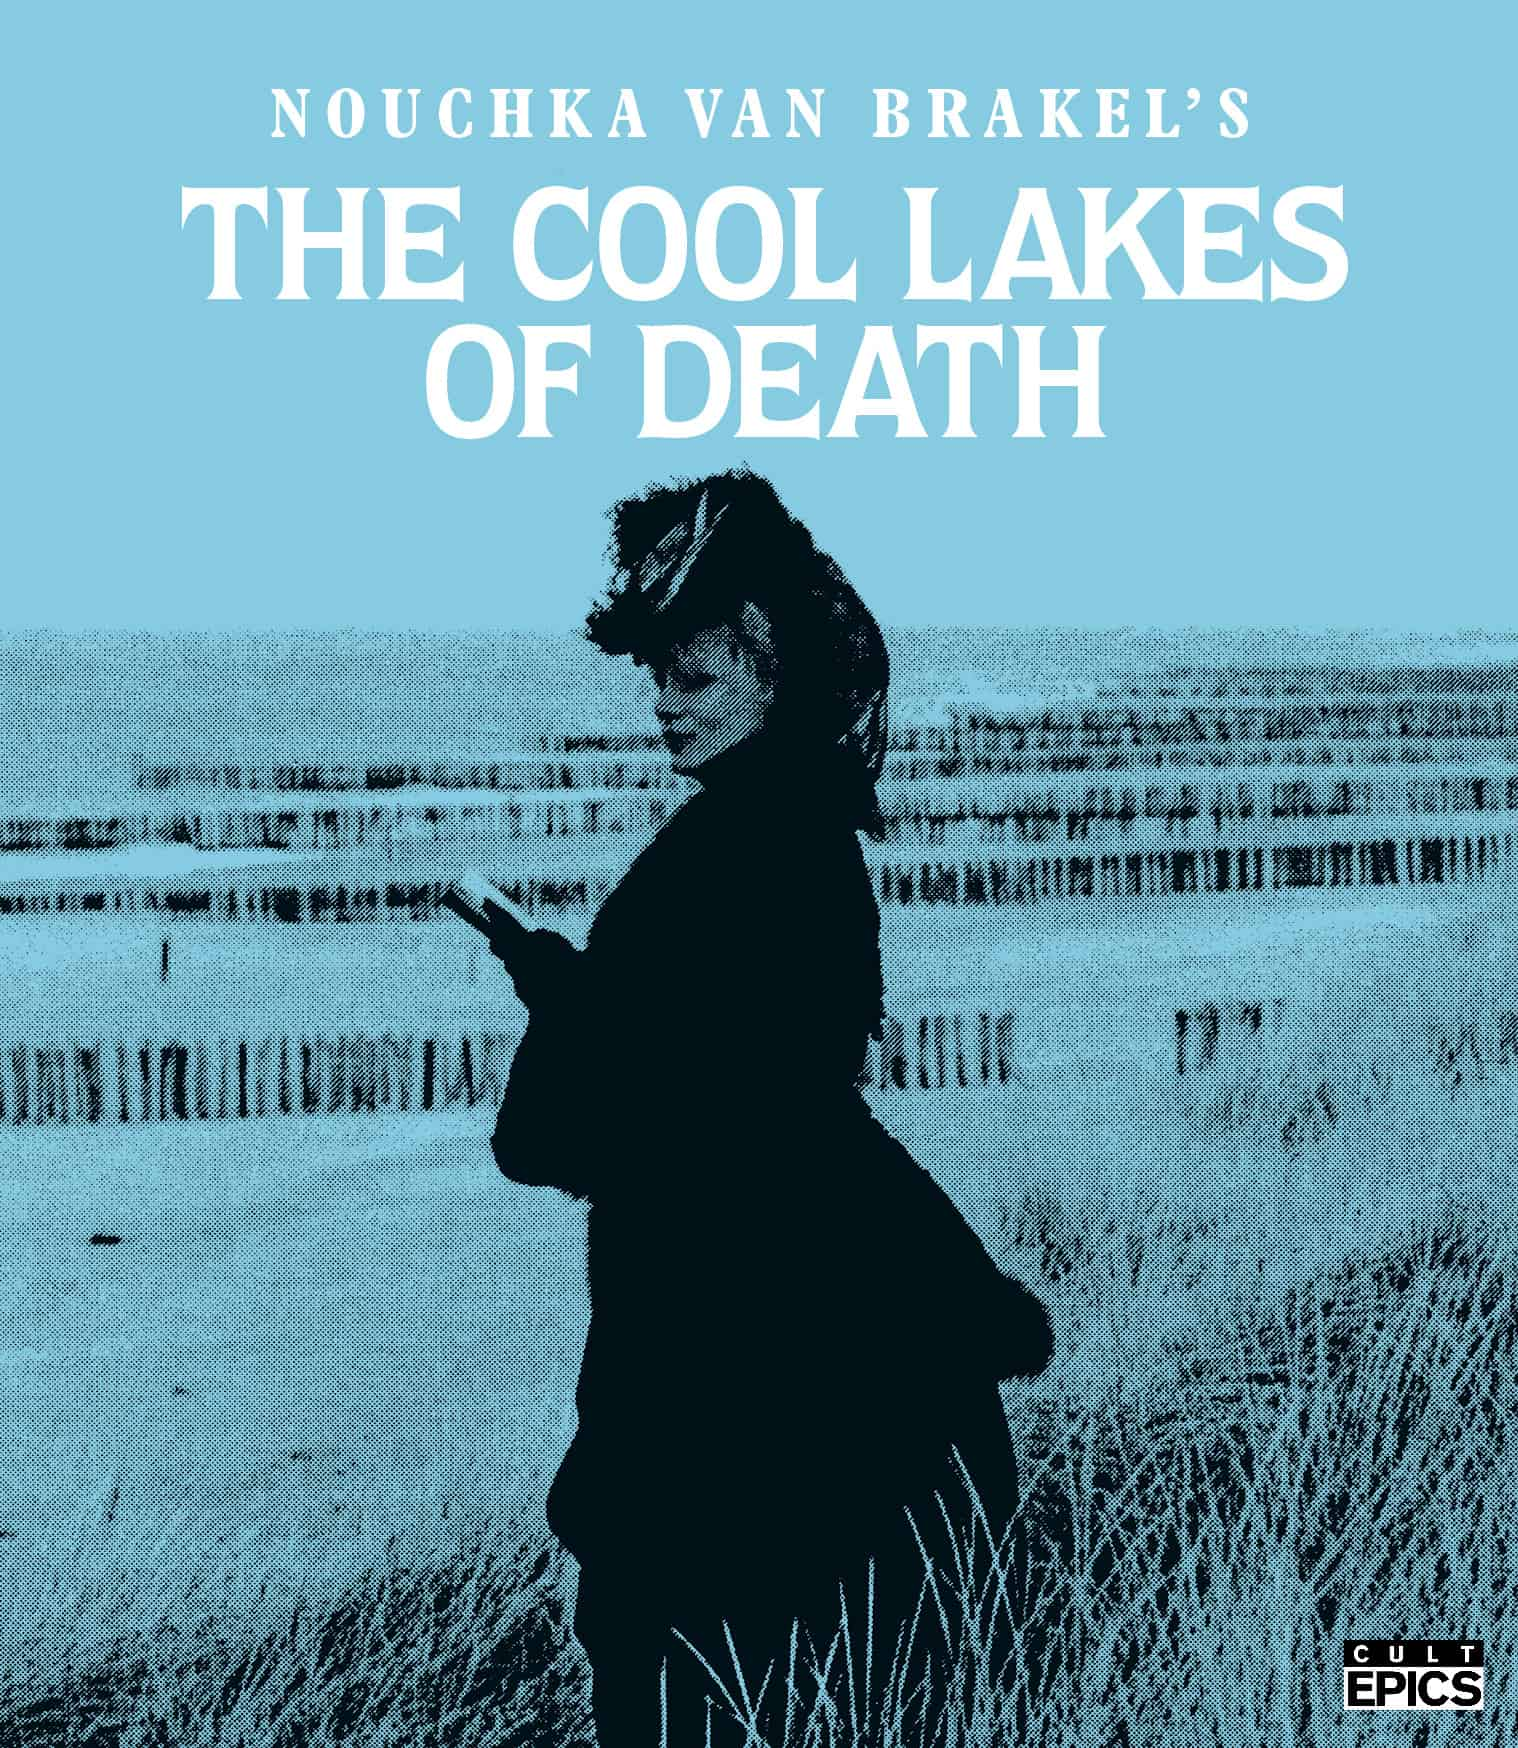 Cult Epics brings The Cool Lakes of Death to Blu-ray and DVD on May 11th 2